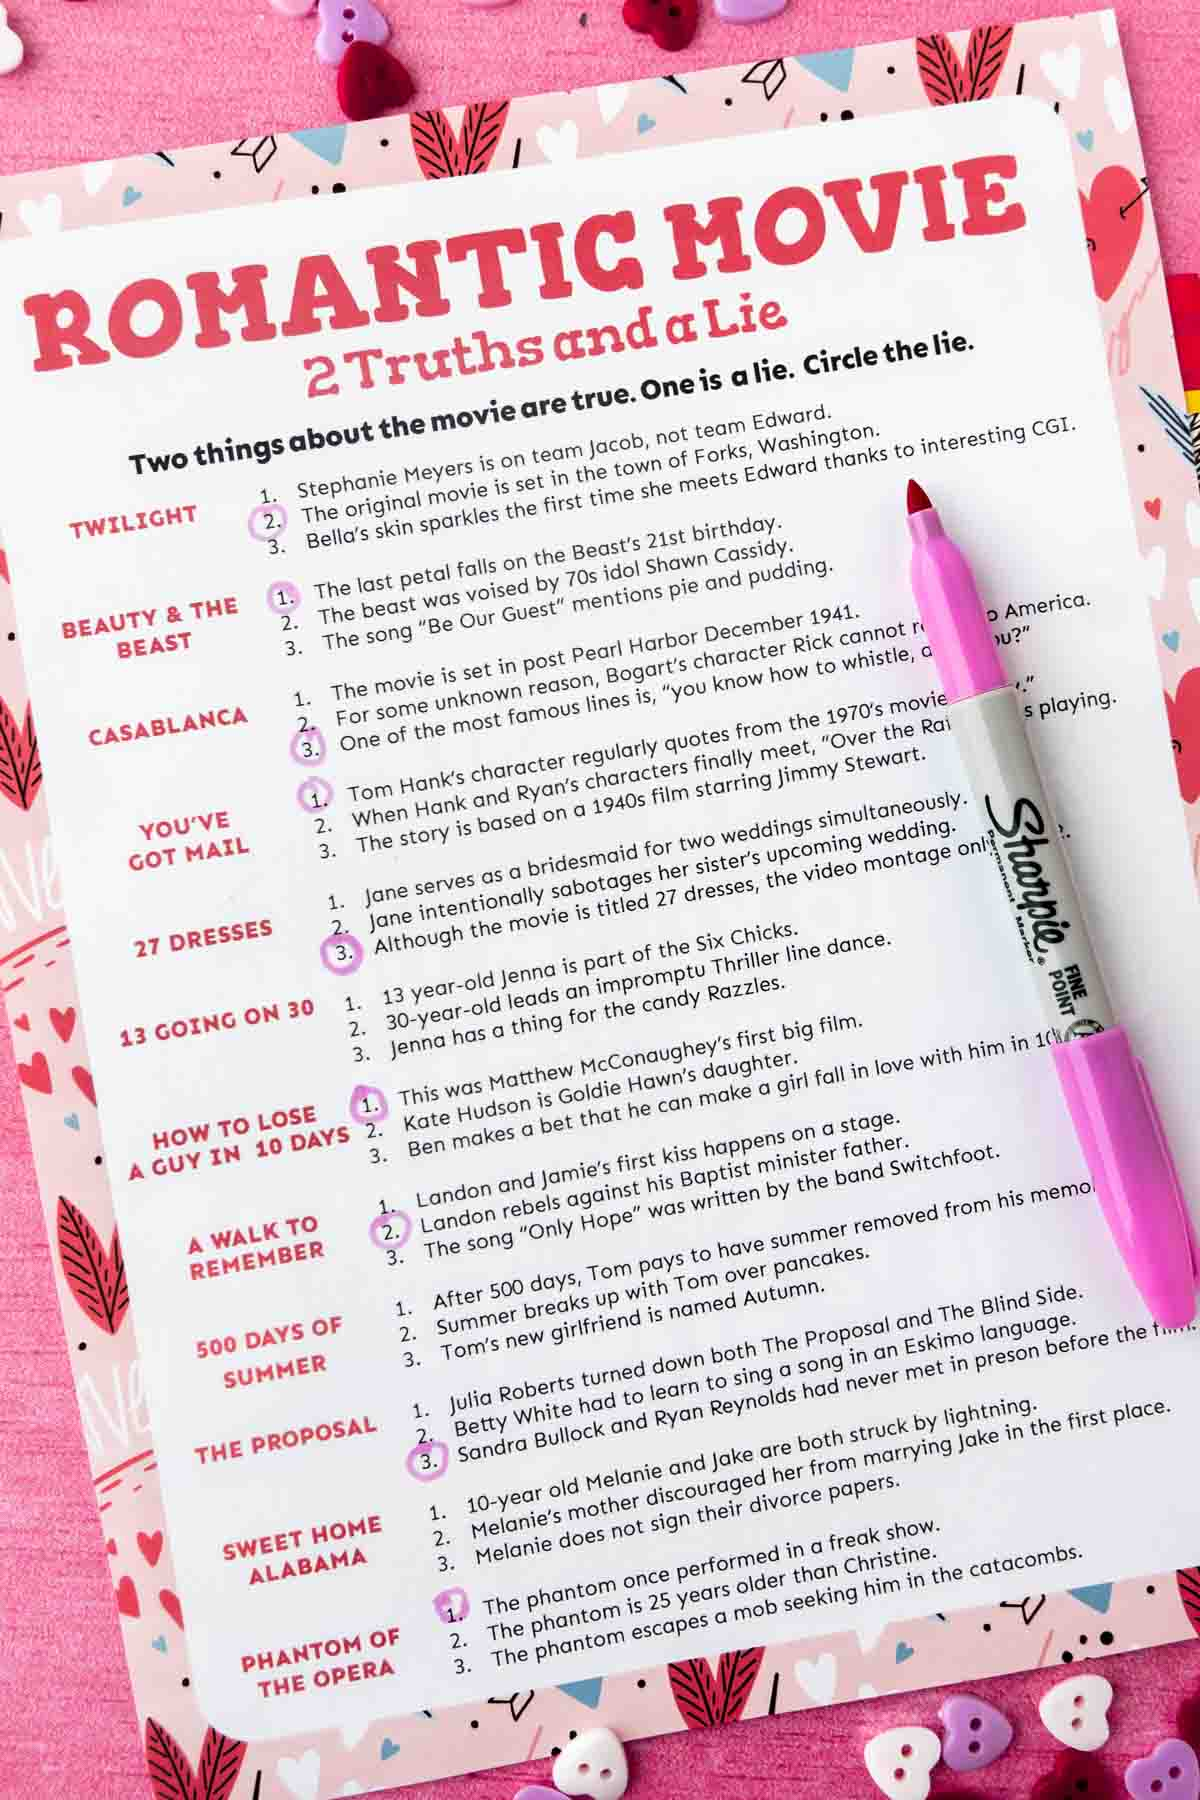 Printed out movie two truths and a lie with answers